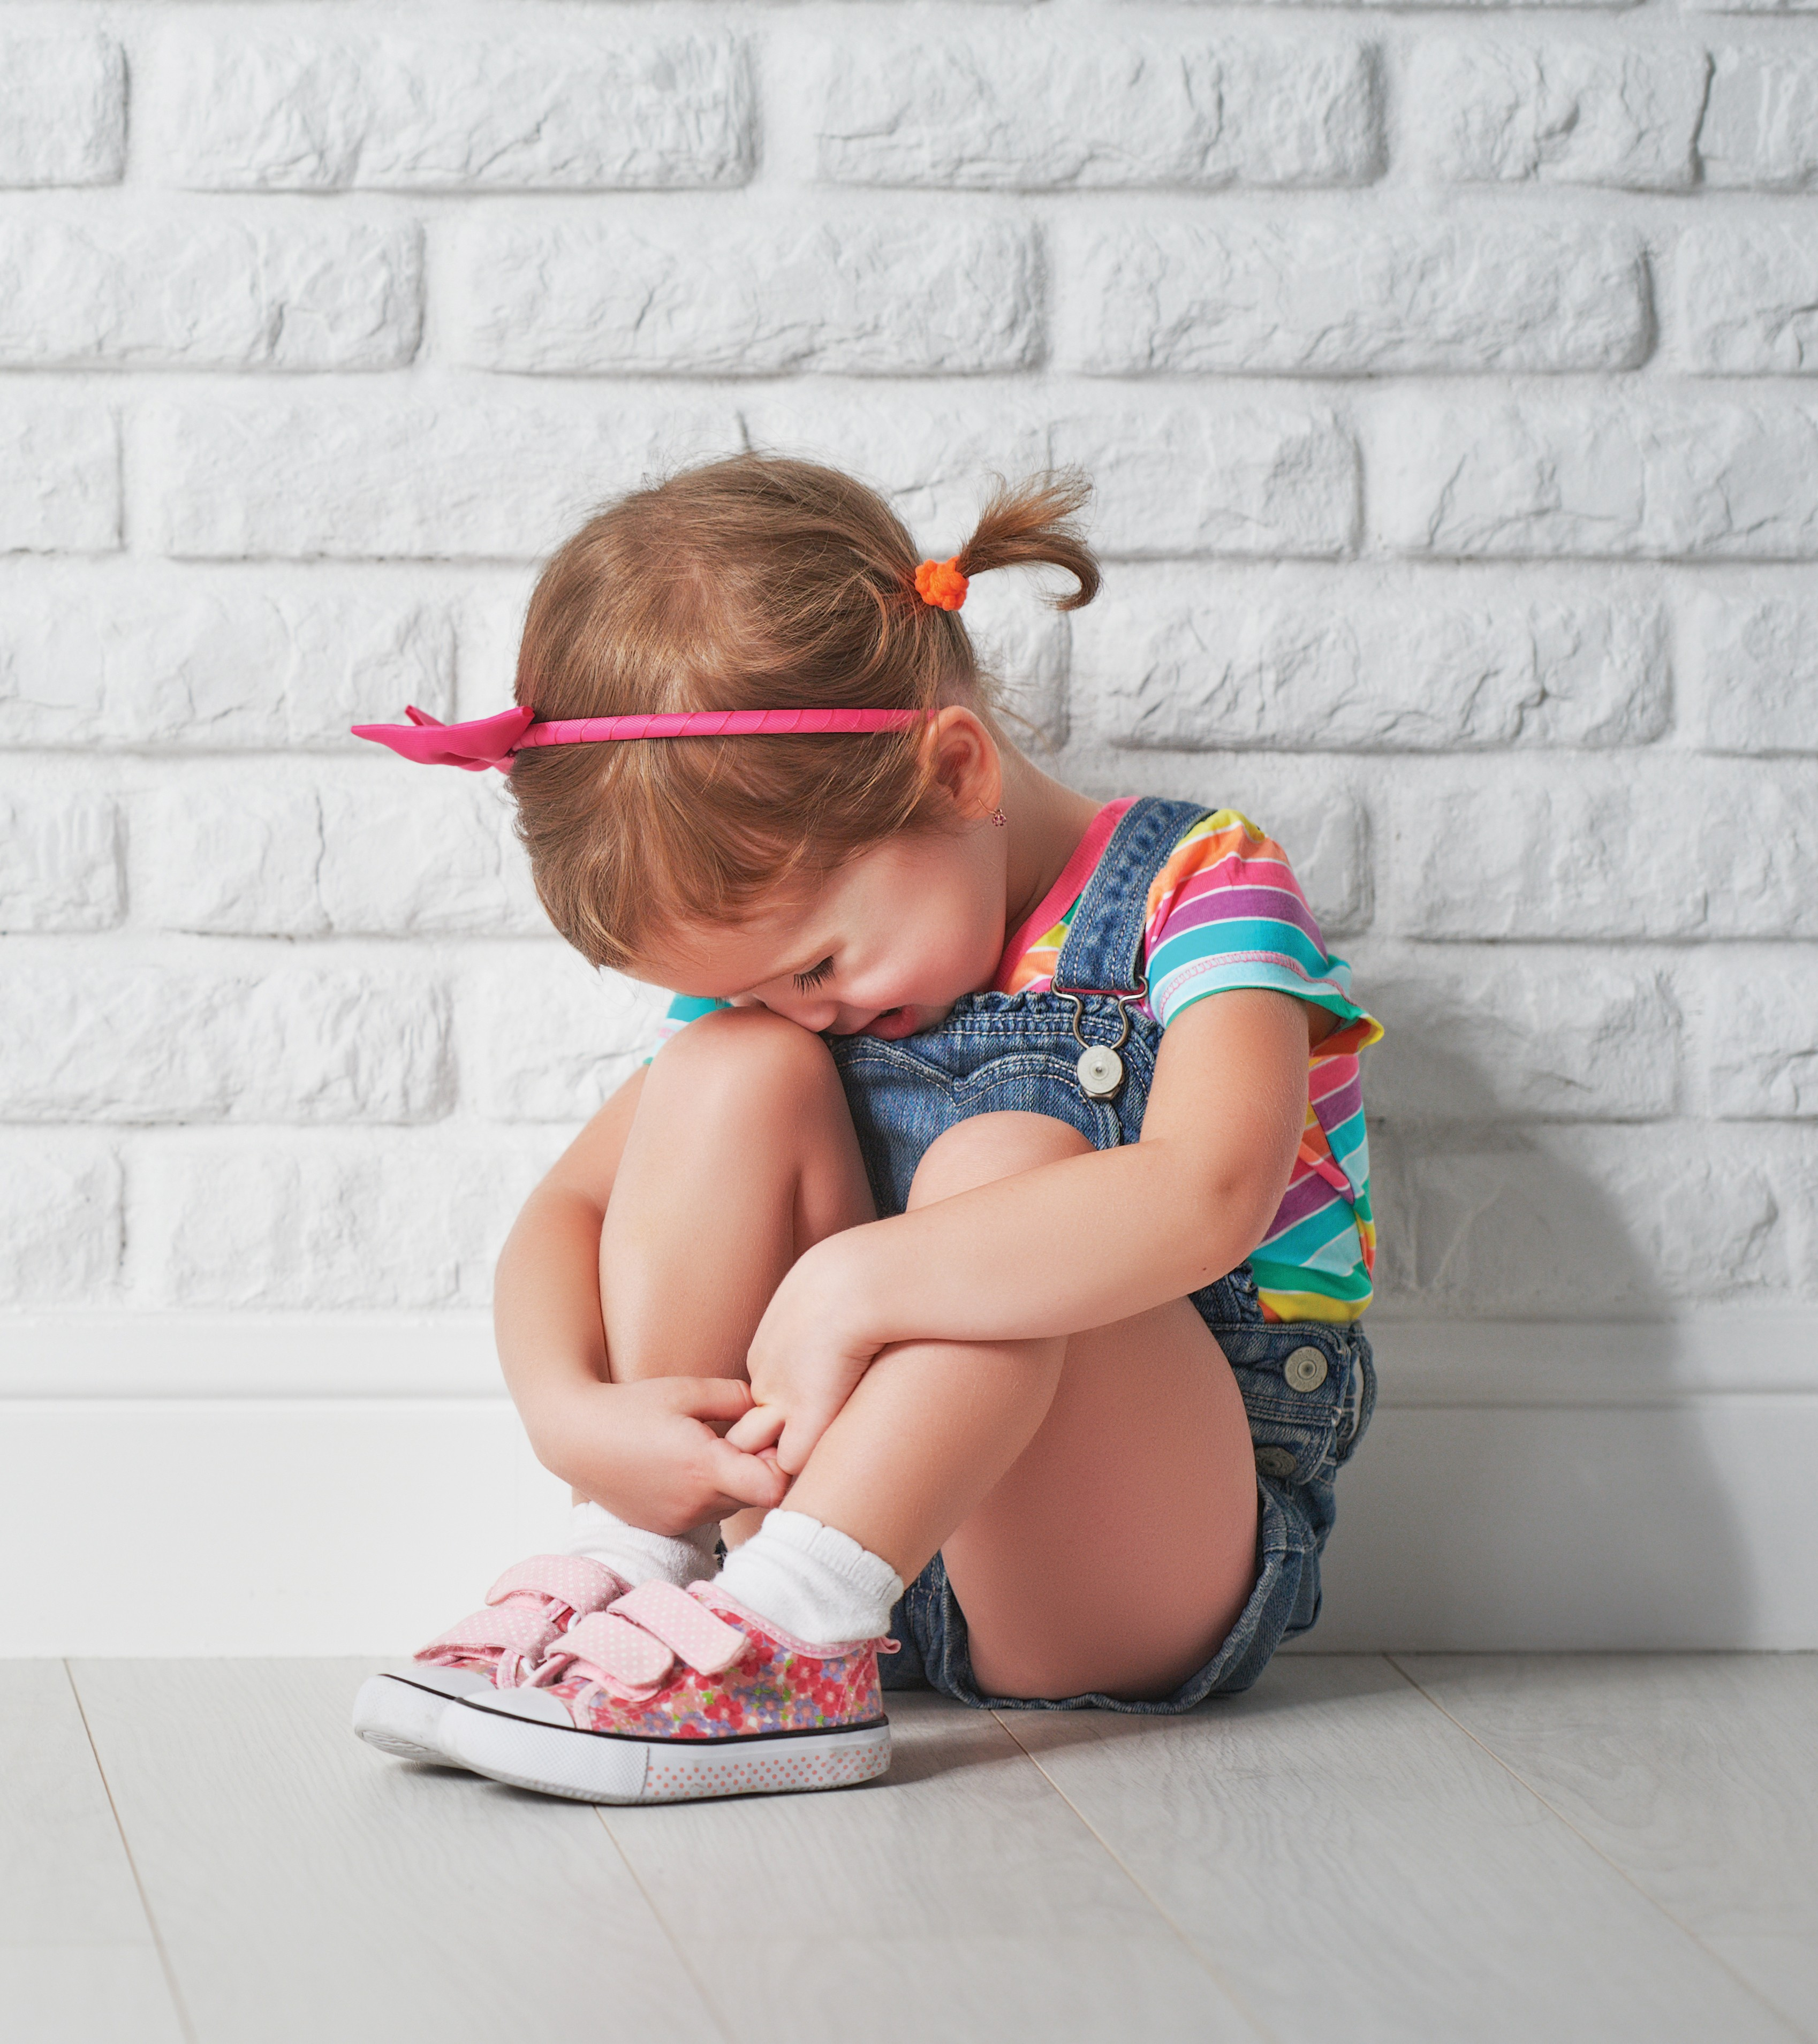 little child girl crying and sad about an empty brick wall (Foto: Getty Images/iStockphoto)